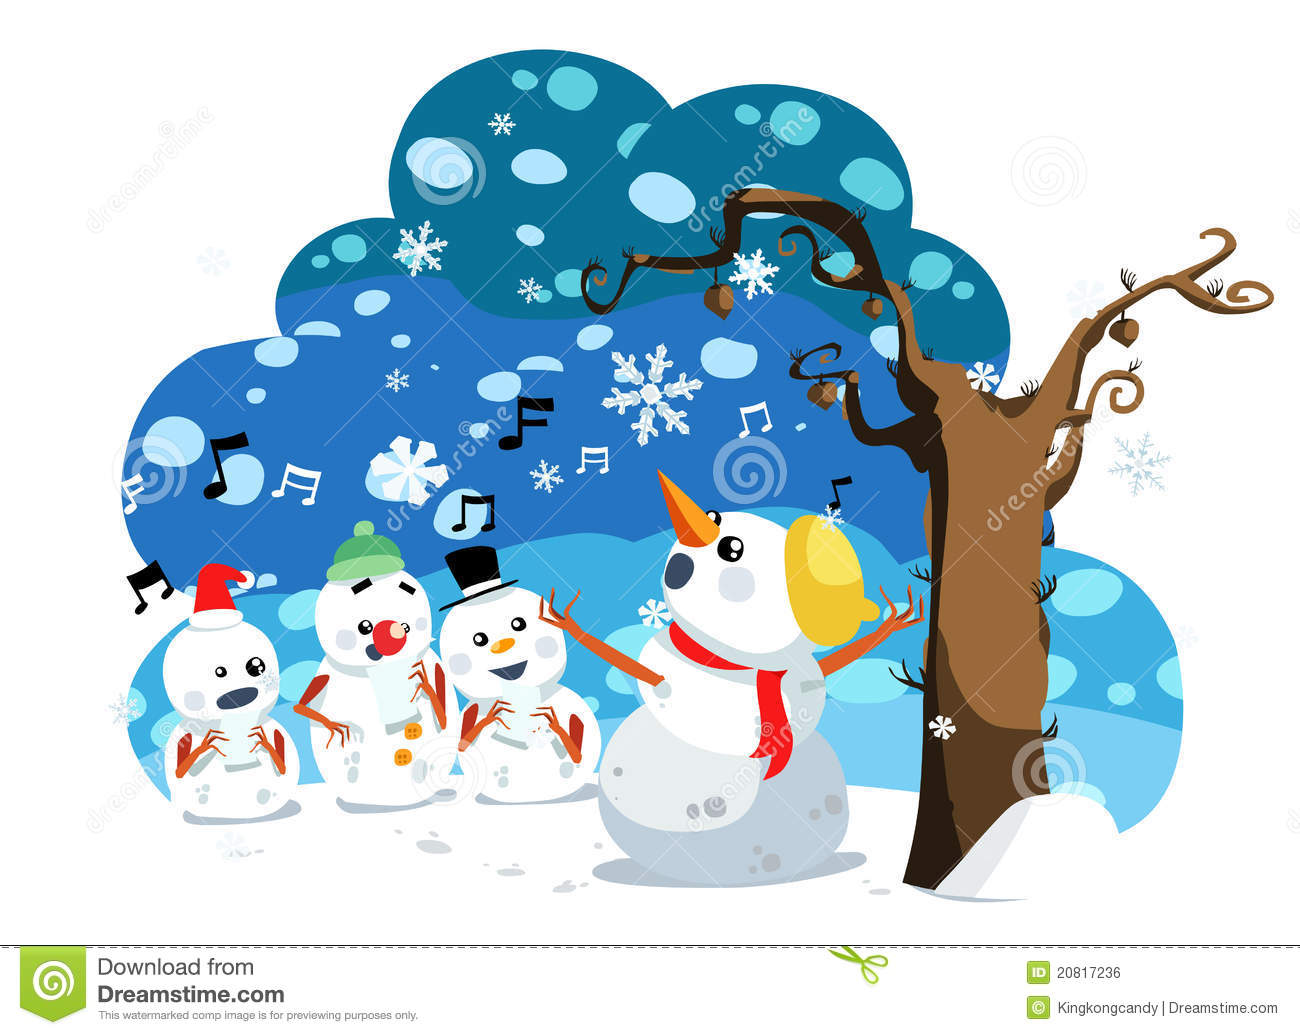 Christmas Snowman Sing A Song Royalty Free Stock Image - Image ...